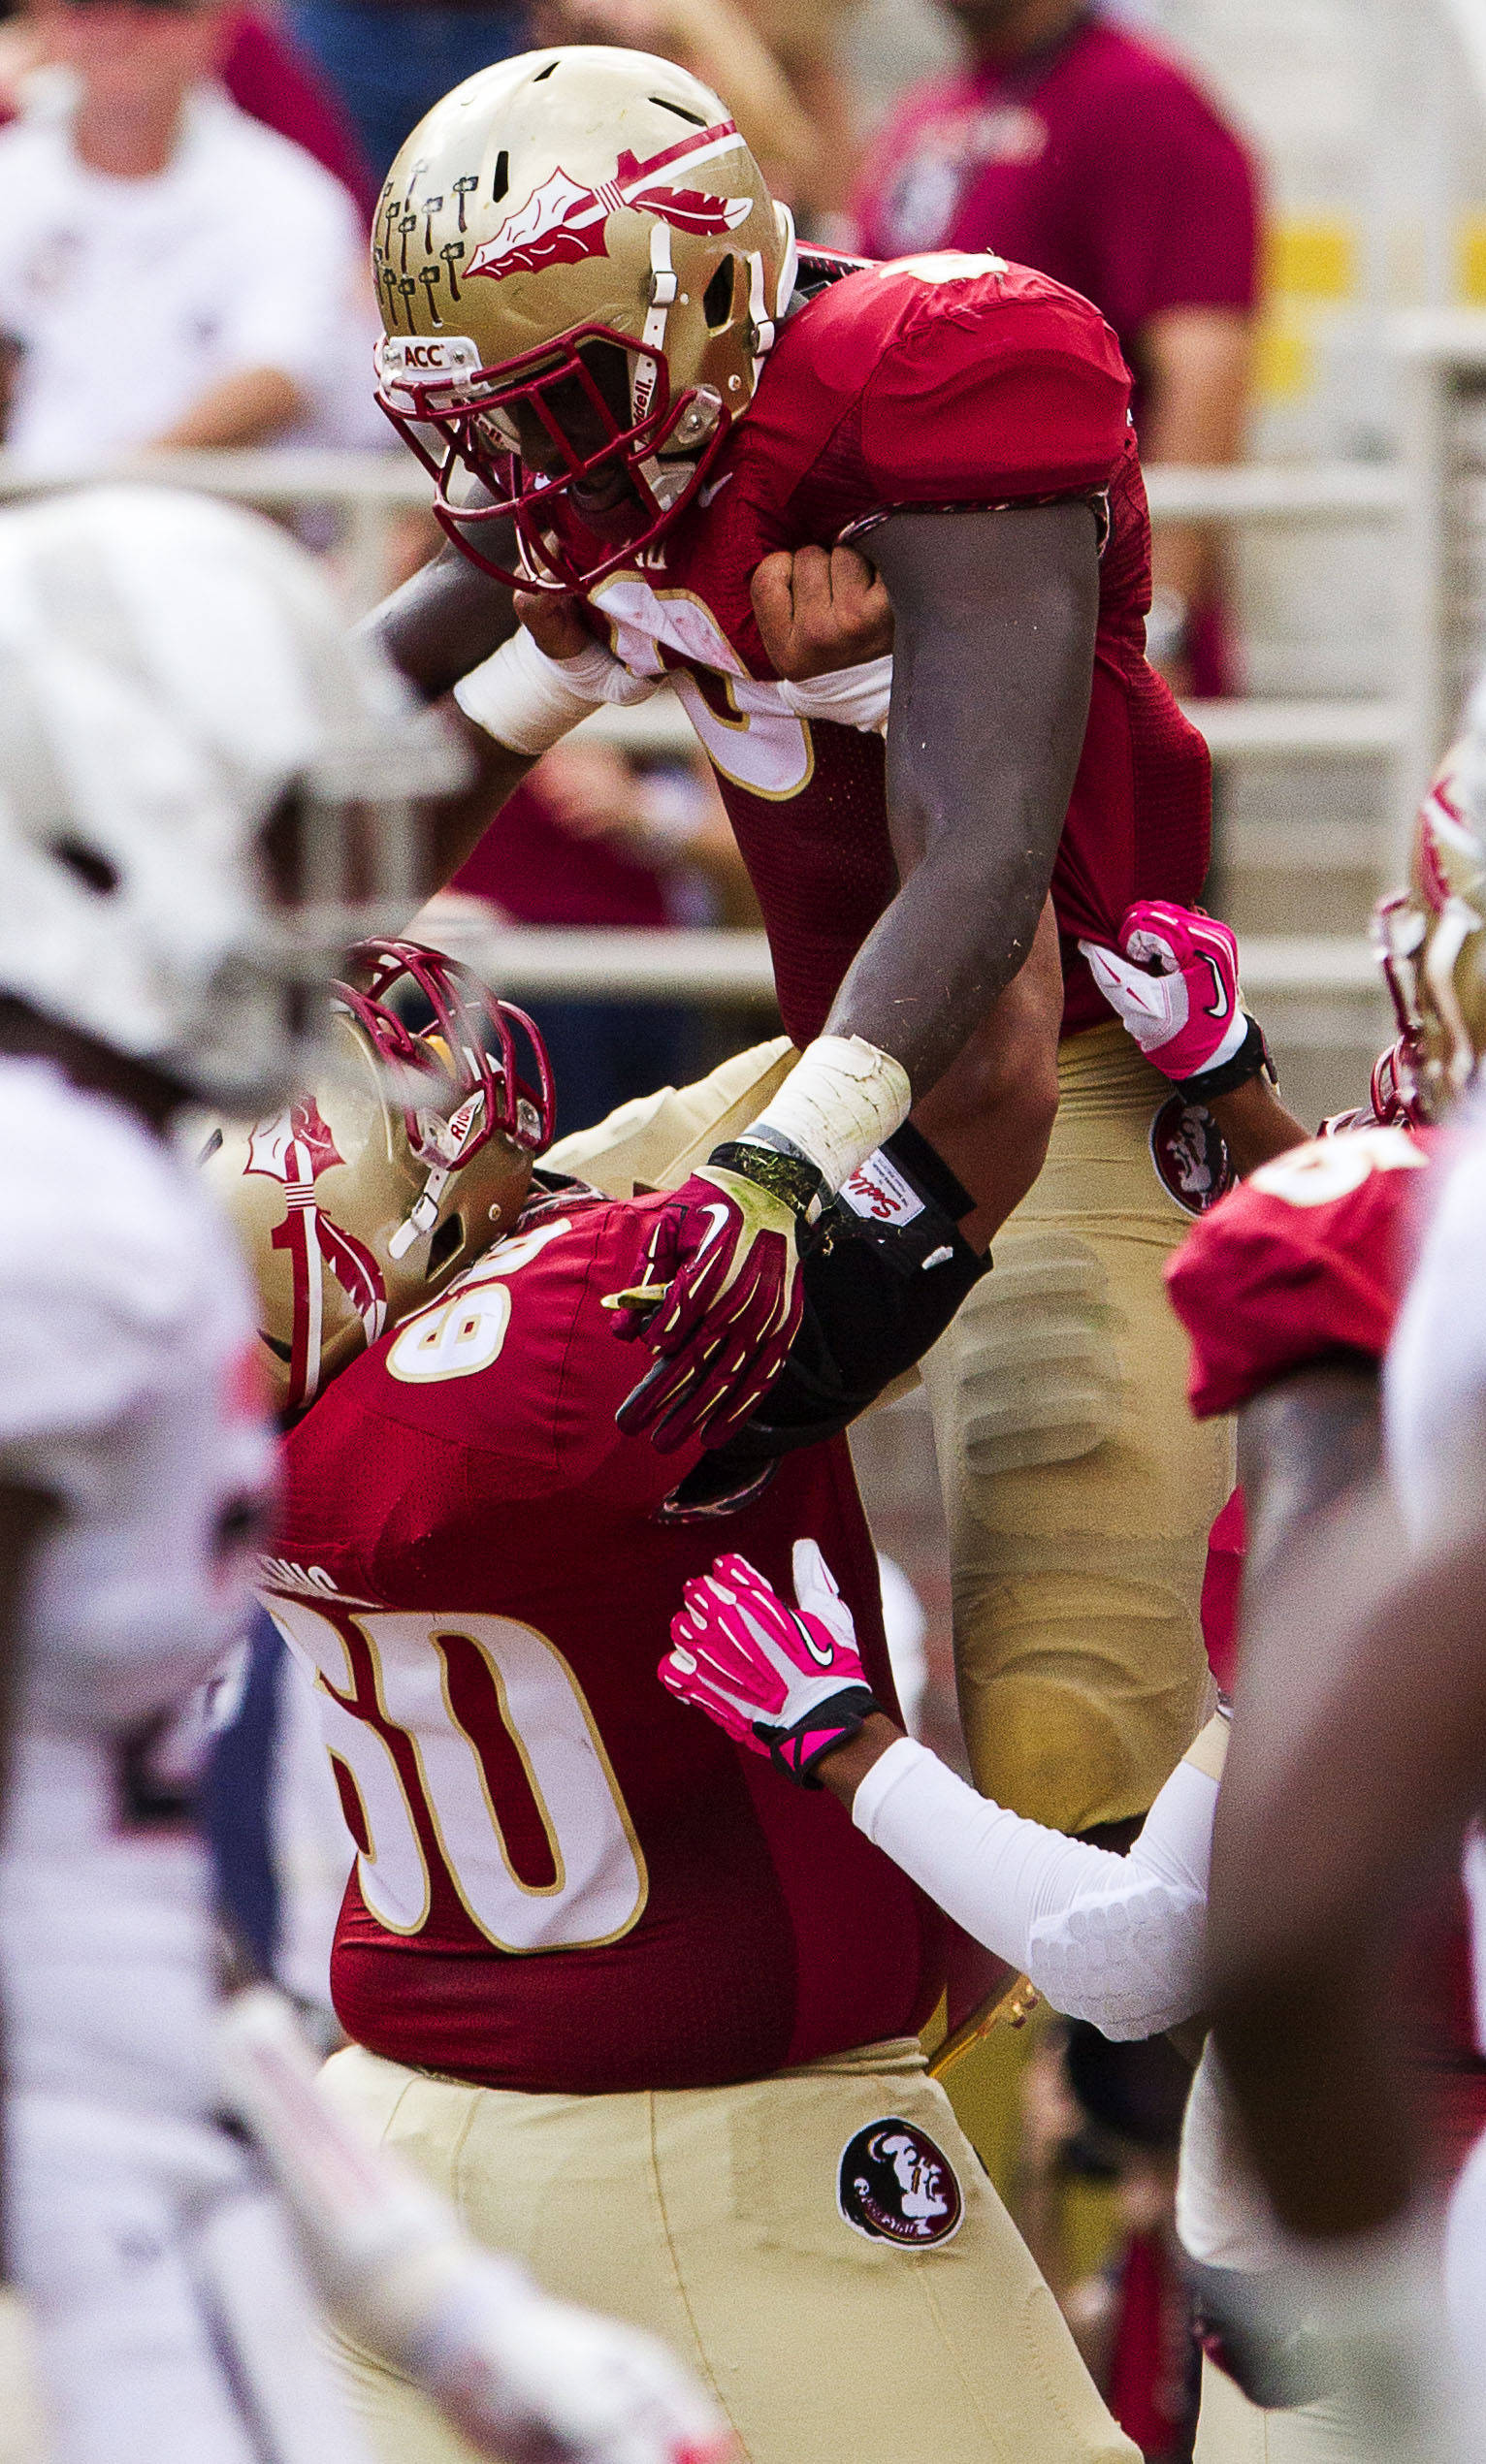 Karlos Williams (9) is lifted in the air after scoring a touchdown during FSU Football's 63-0 shutout of Maryland on Saturday, October 5, 2013 in Tallahassee, Fla.